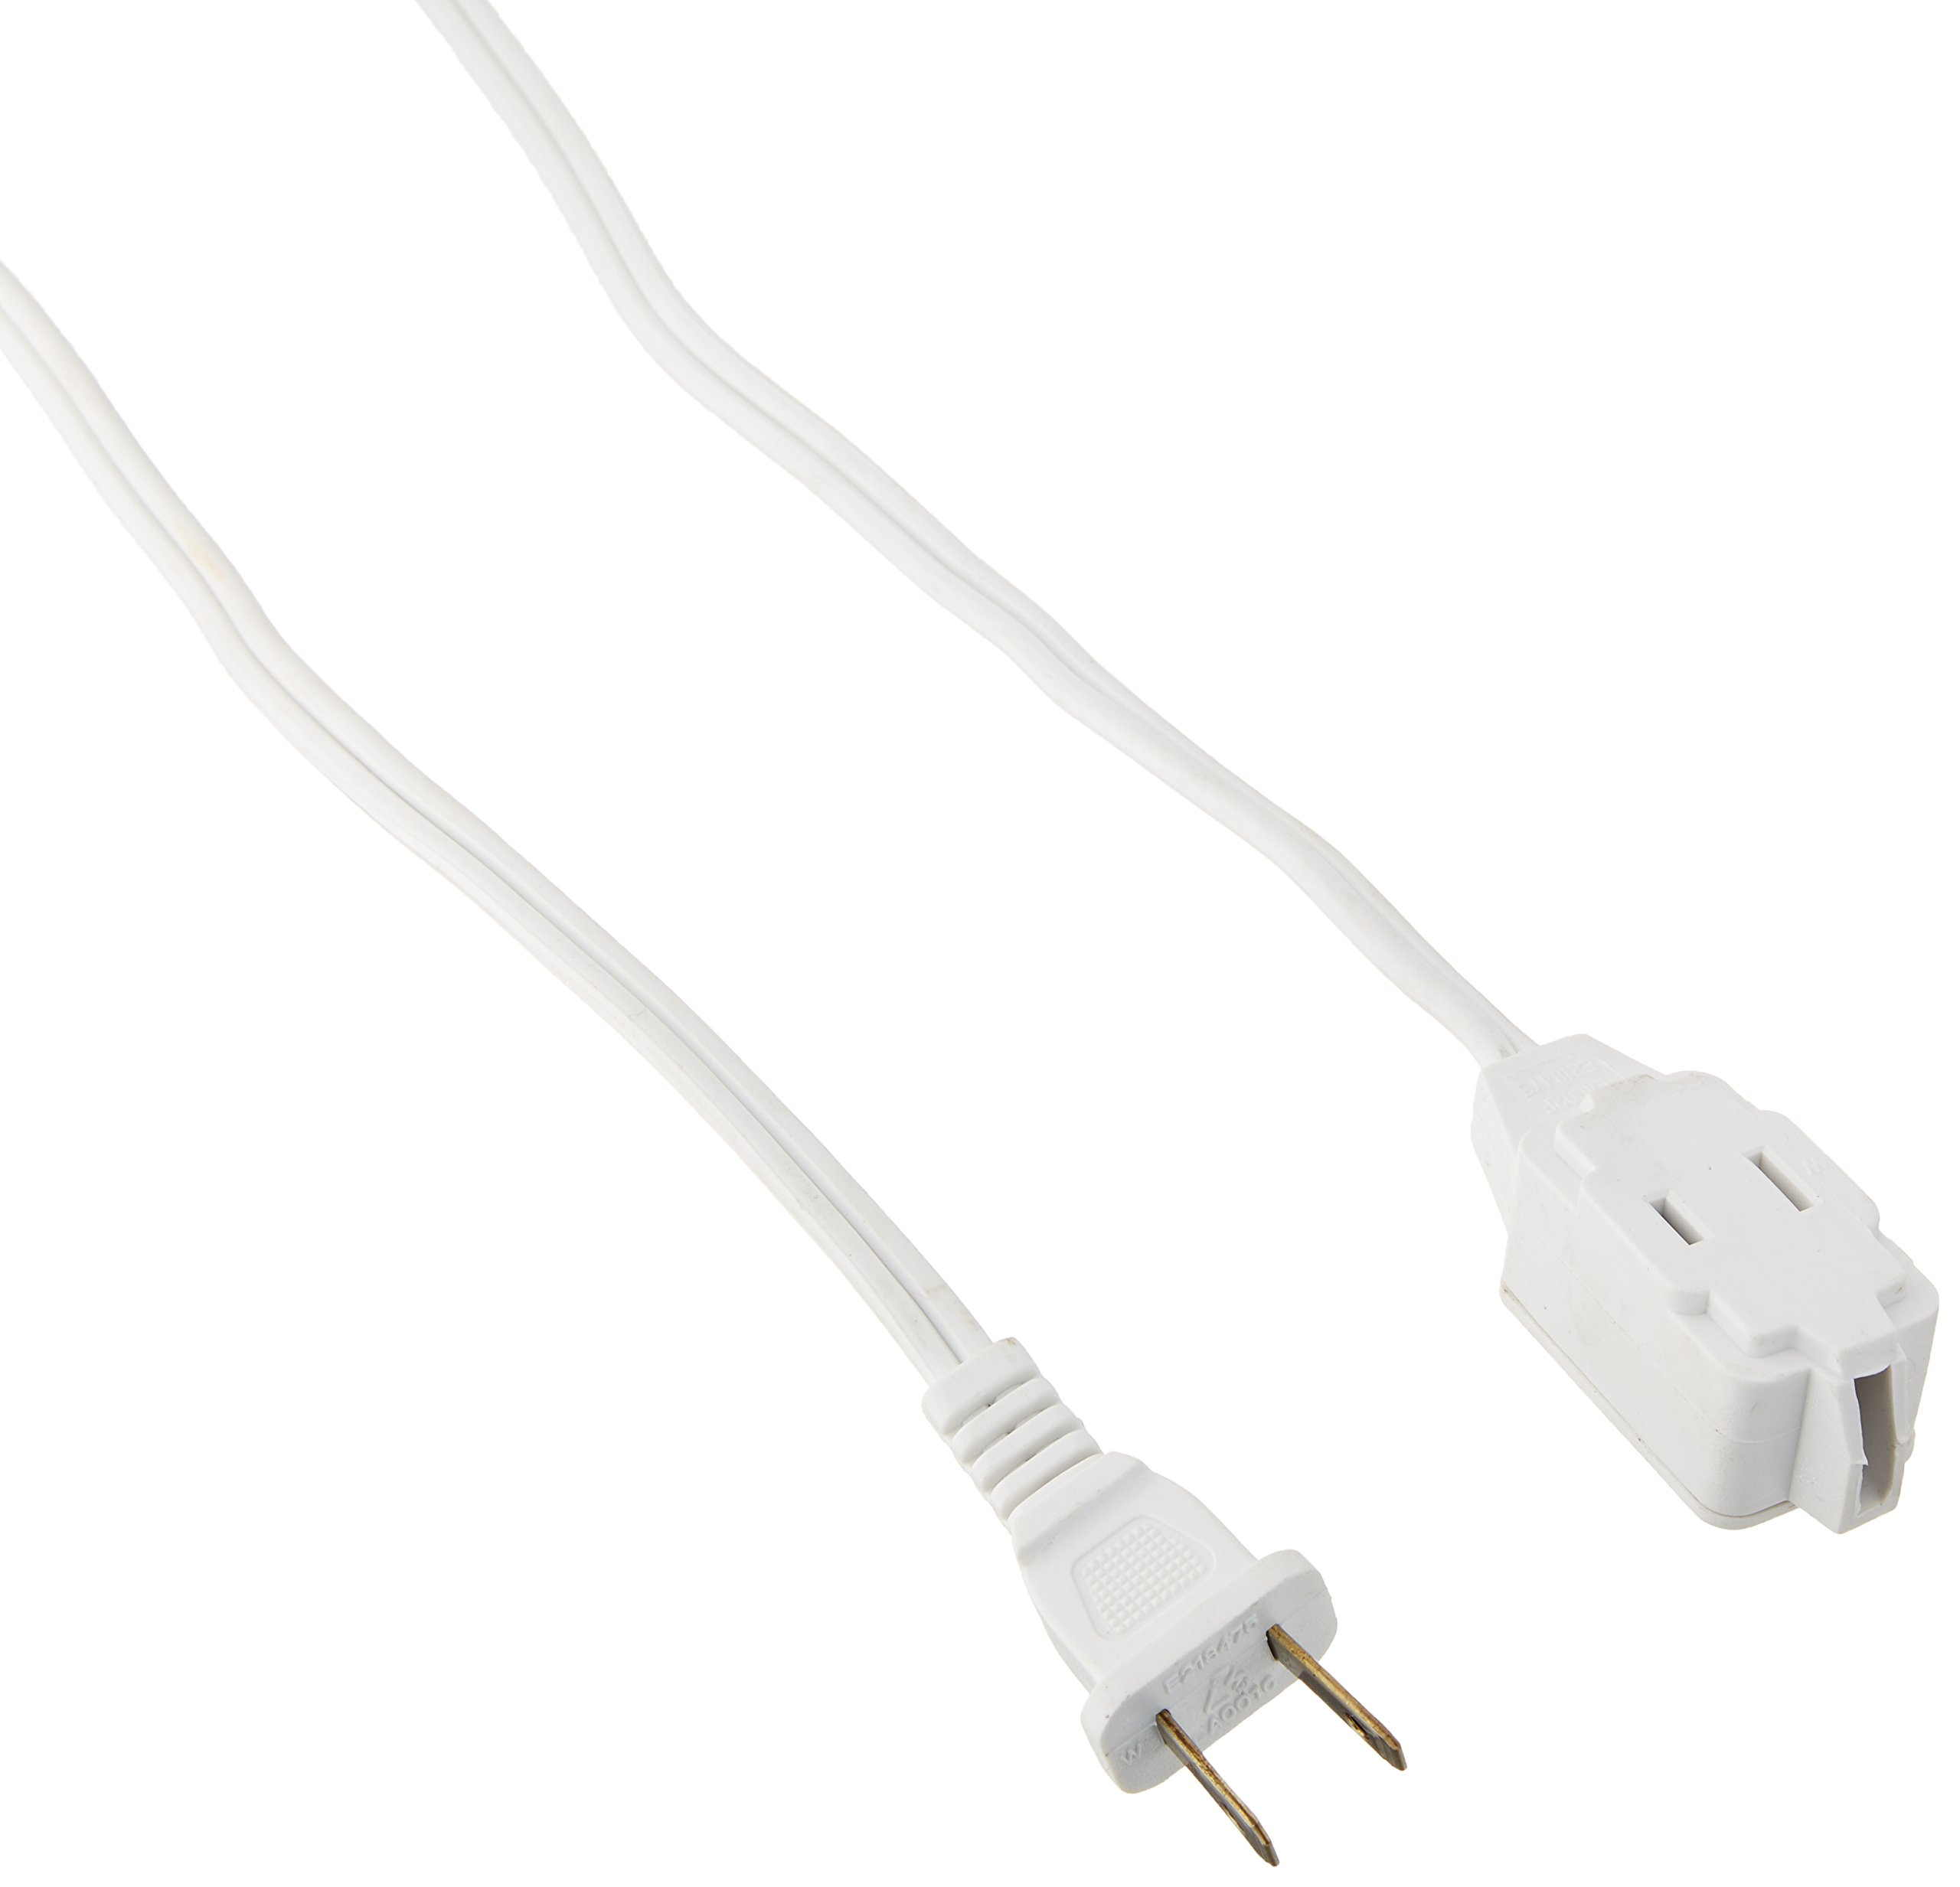 ATE Pro. USA 70037 Extension Cord, 12', 16 Gauge, 2-Prong